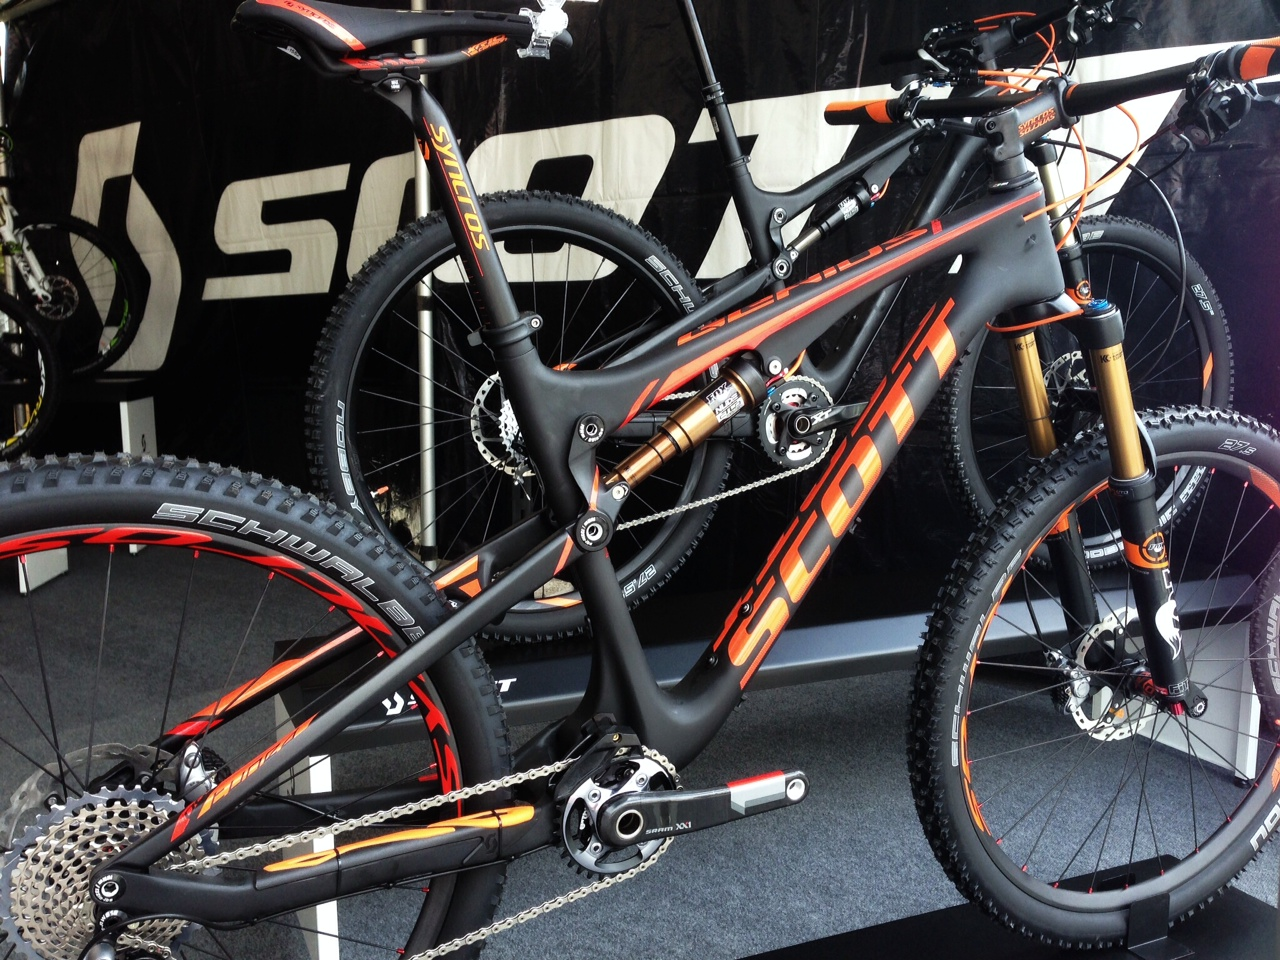 Bikes 2015 the lightest bike in the